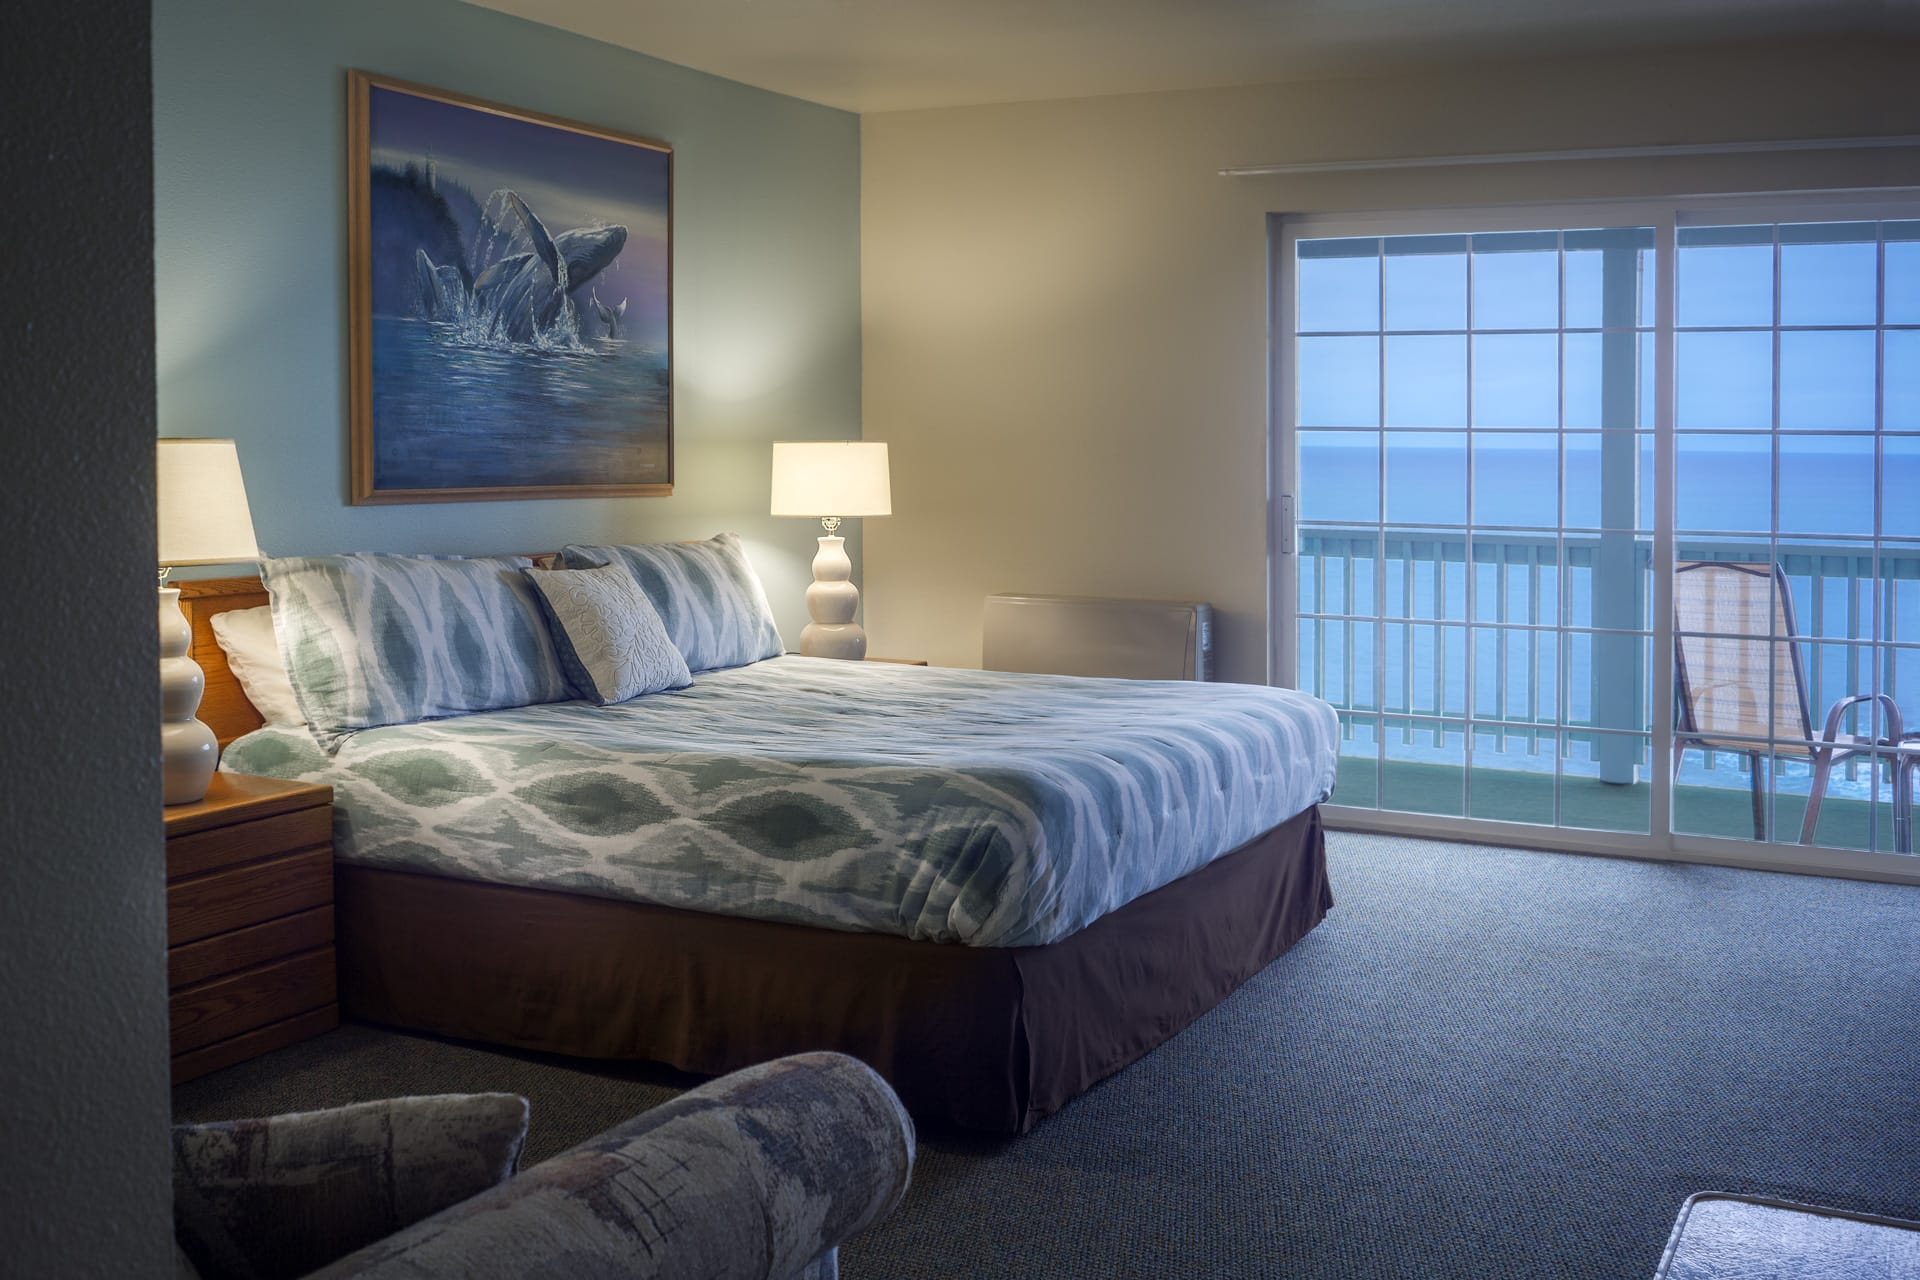 Standard Guestroom hotel room at the oceanfront Inn of the Lost Coast Shelter Cove with King size bed and private balcony overlooking the Pacific Ocean's Northern coastline.